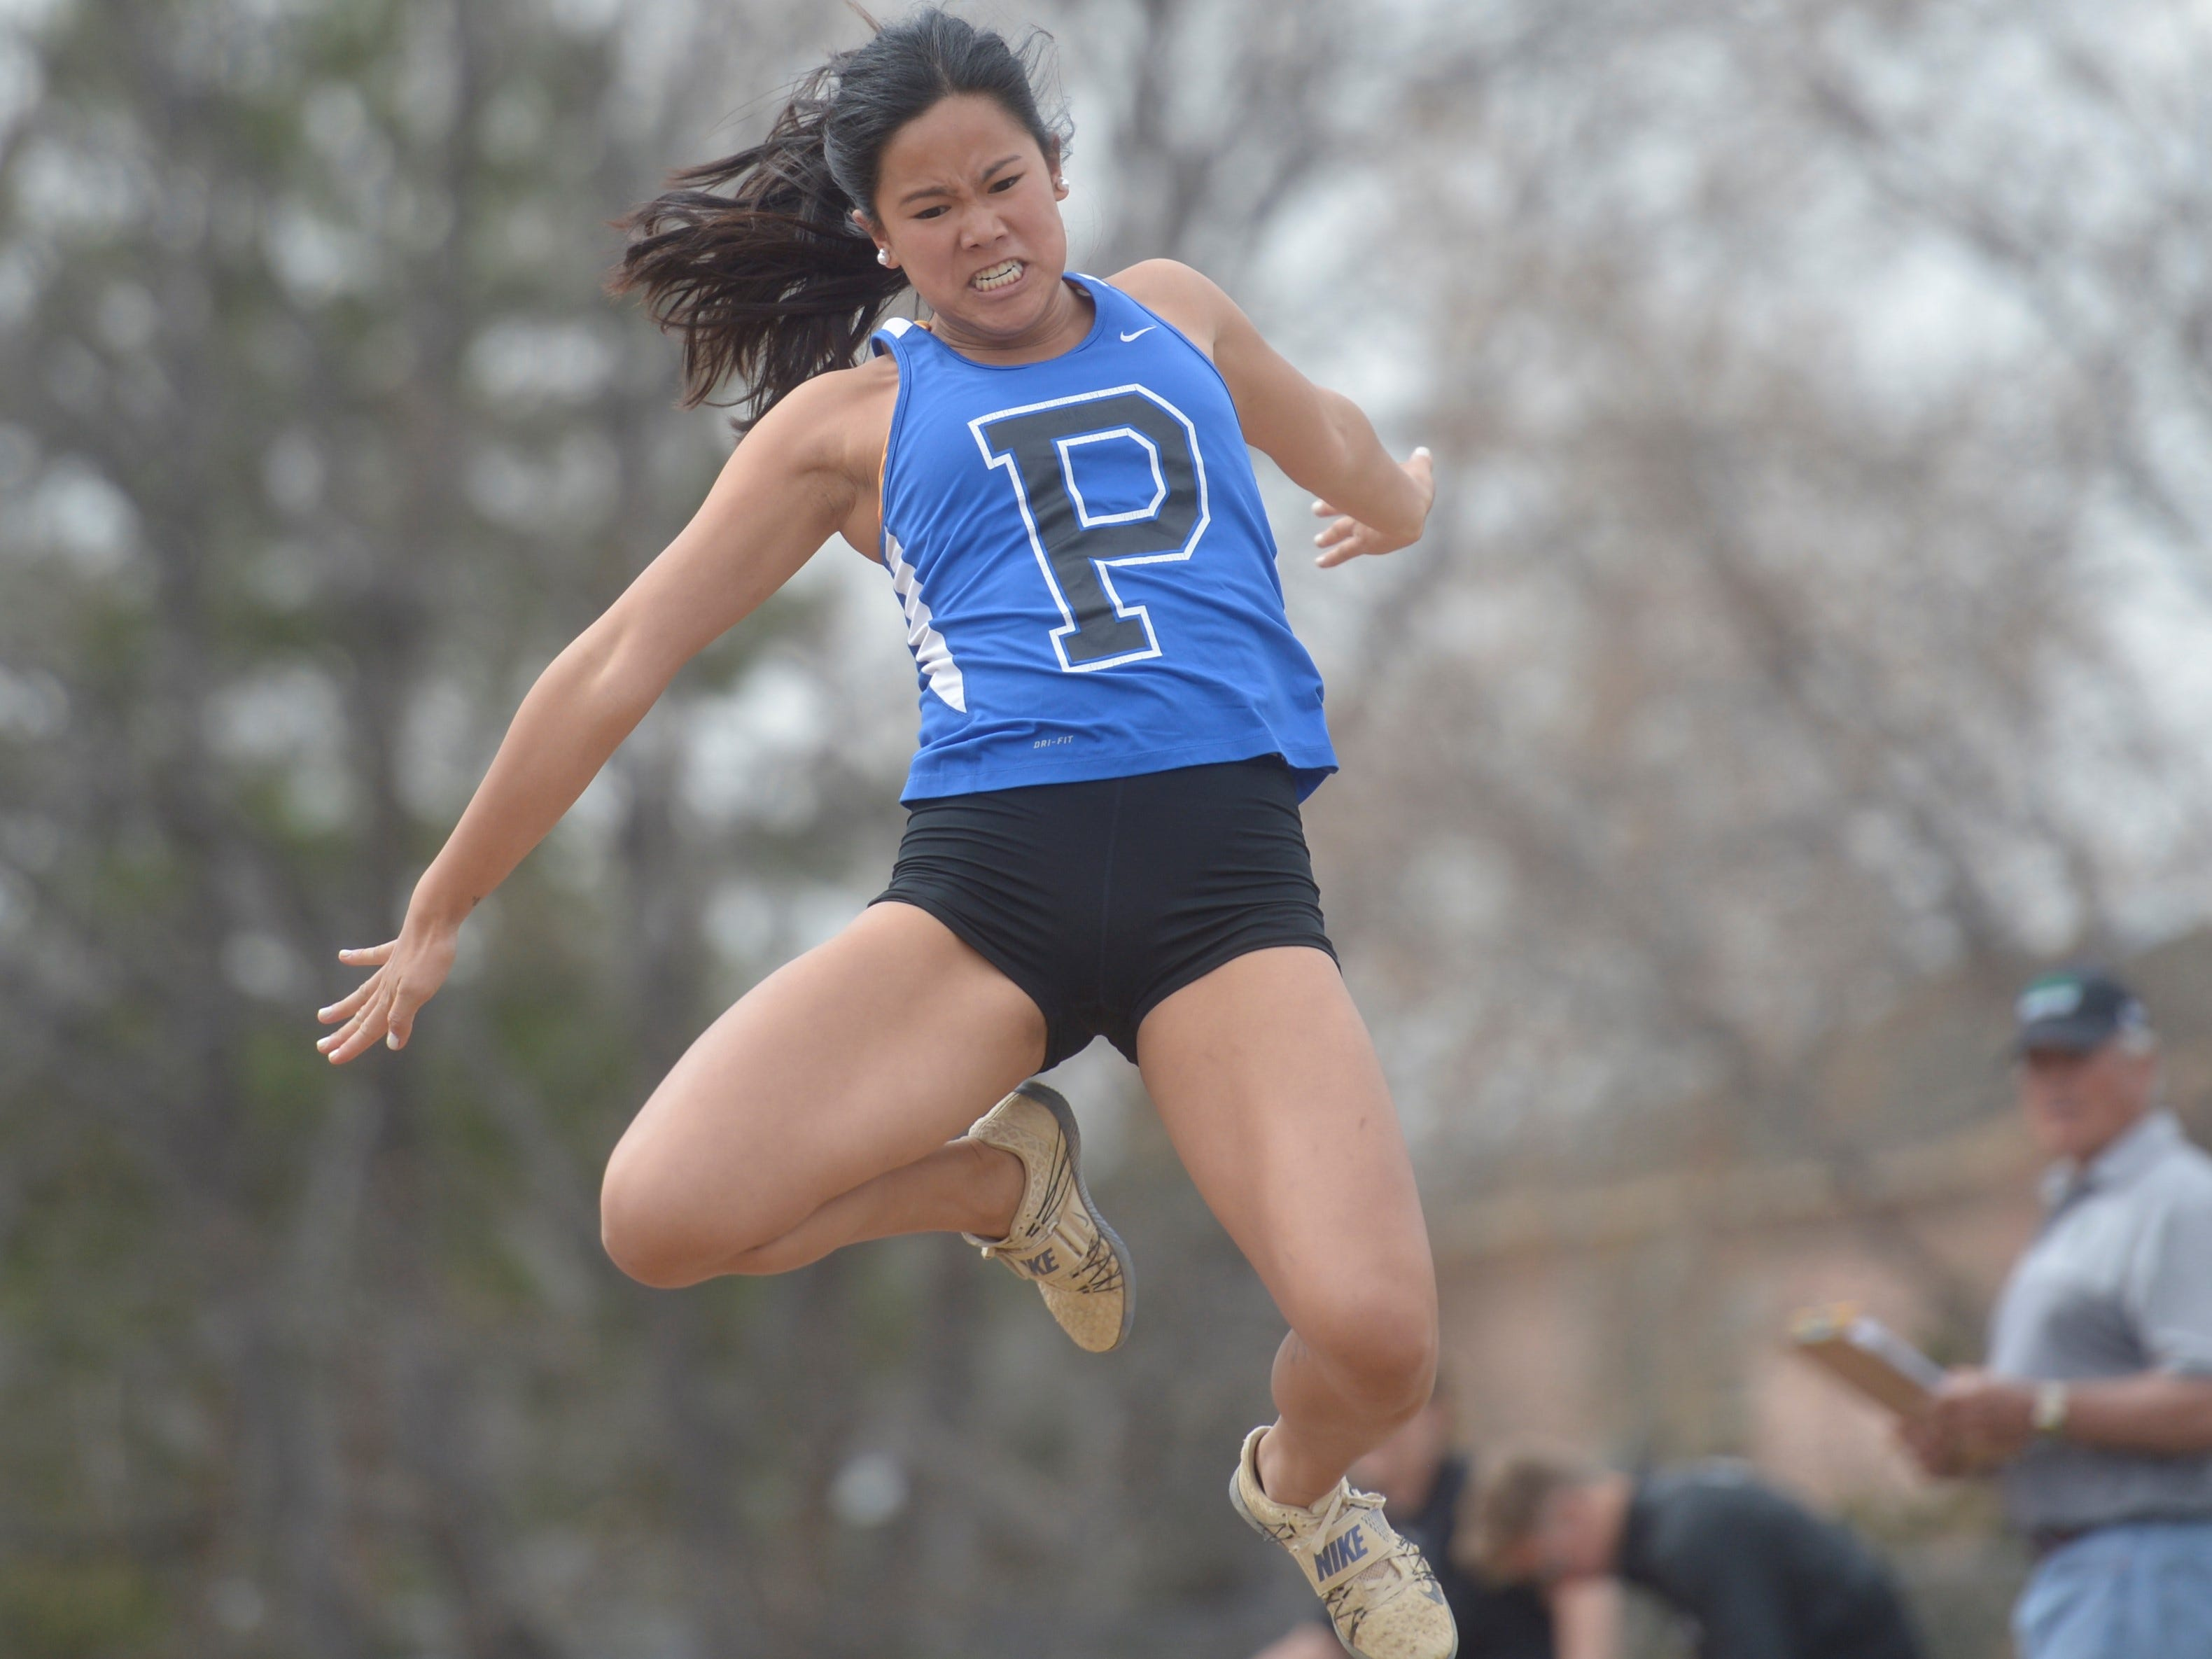 Poudre High School's Zoe Drigot competes in the triple jump at the Fort Collins city meet at French Field on Tuesday, April 9, 2019.